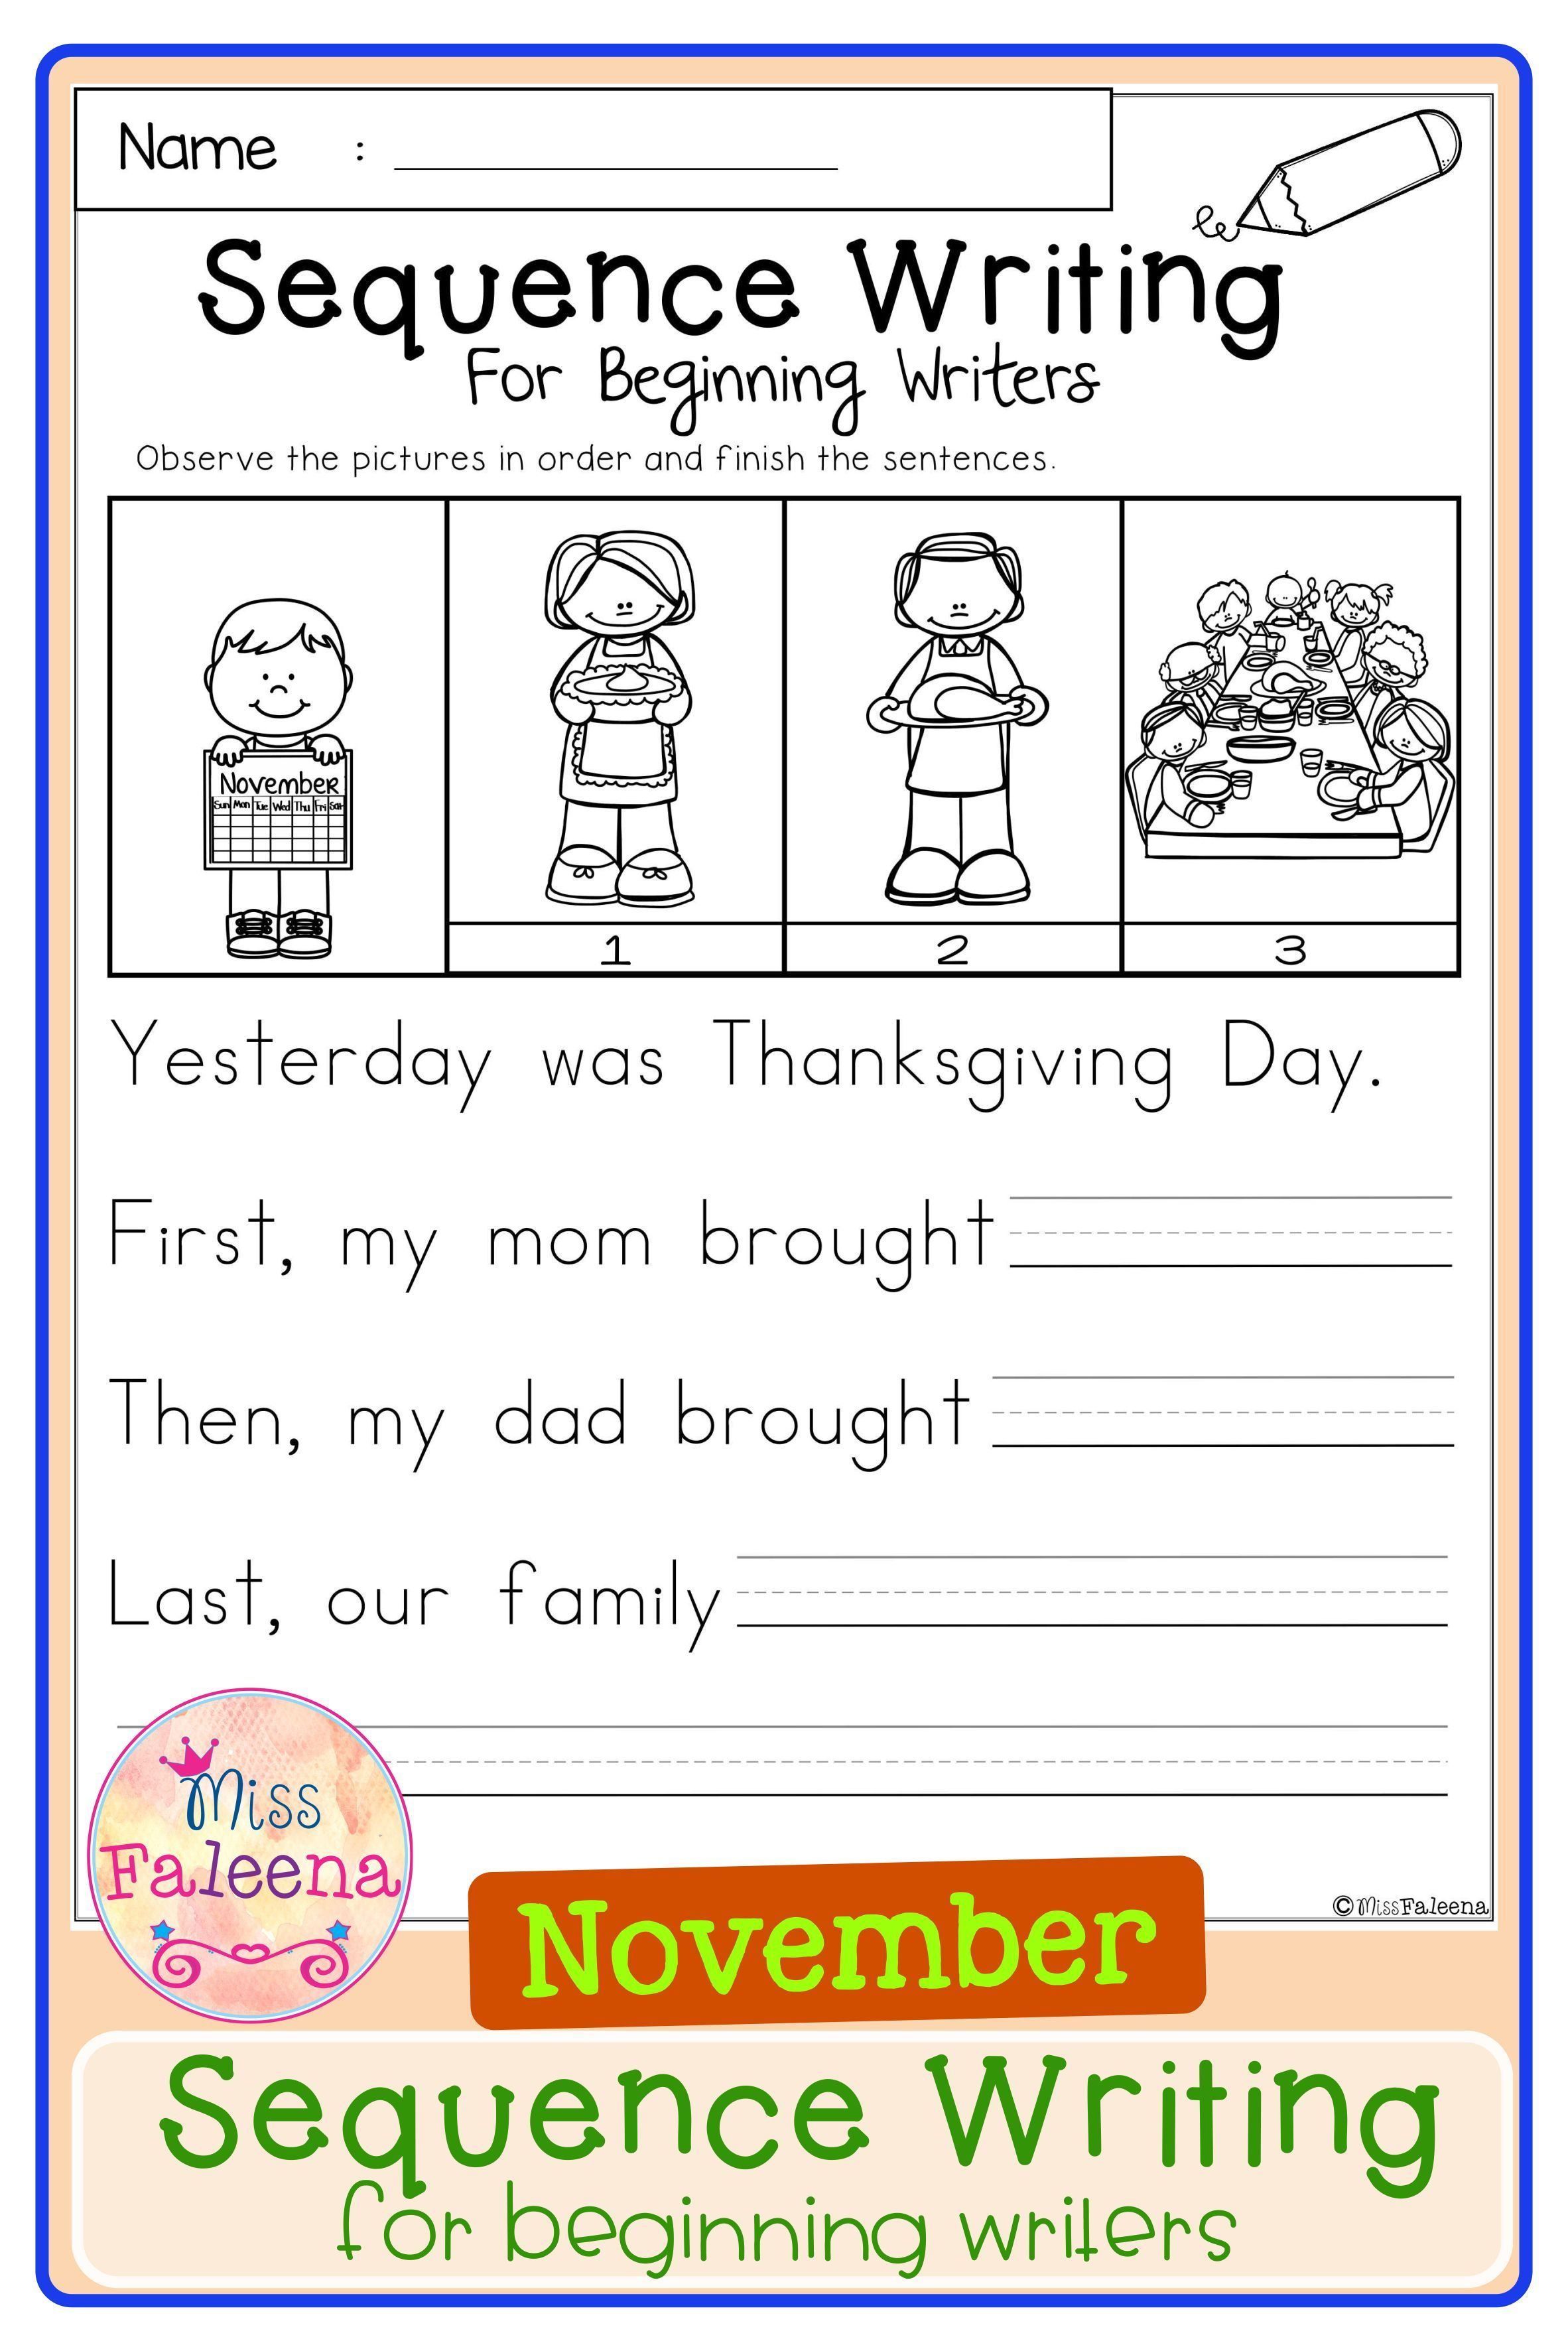 November Sequence Writing For Beginning Writers Sequence Writing Printable Writing Prompts First Grade Worksheets [ 3544 x 2364 Pixel ]